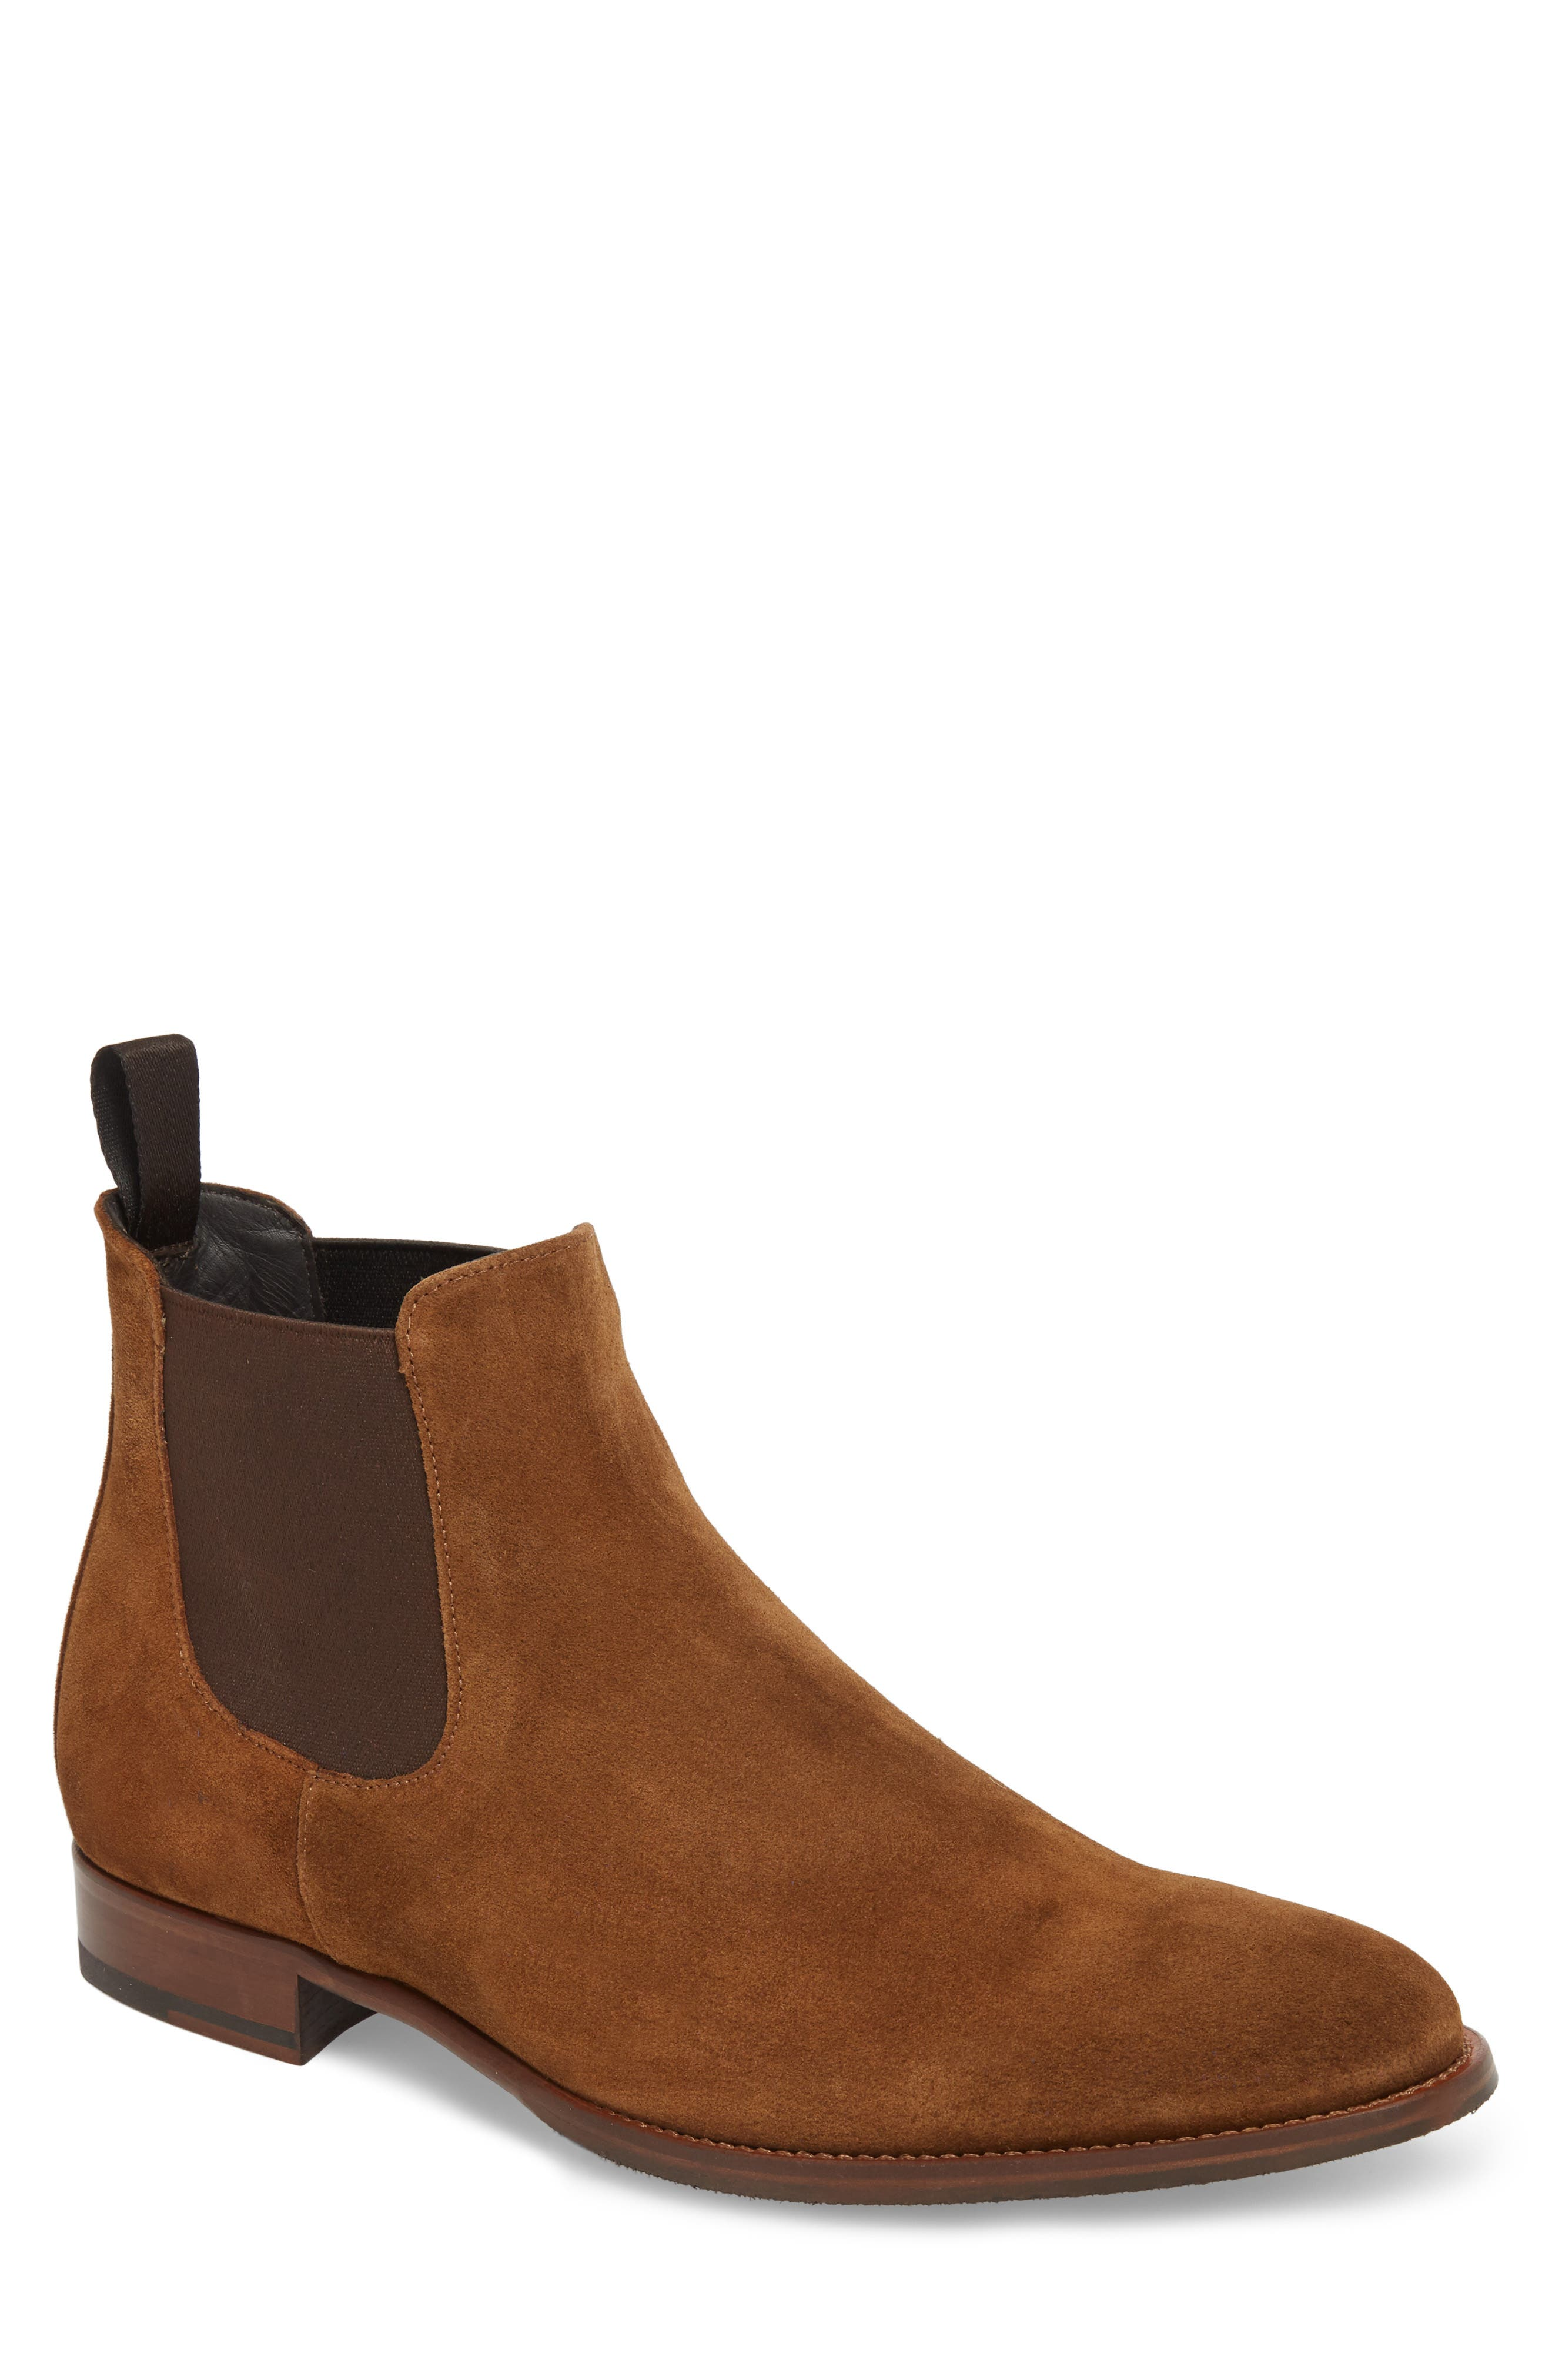 TO BOOT NEW YORK, Shelby Mid Chelsea Boot, Main thumbnail 1, color, MID BROWN SUEDE